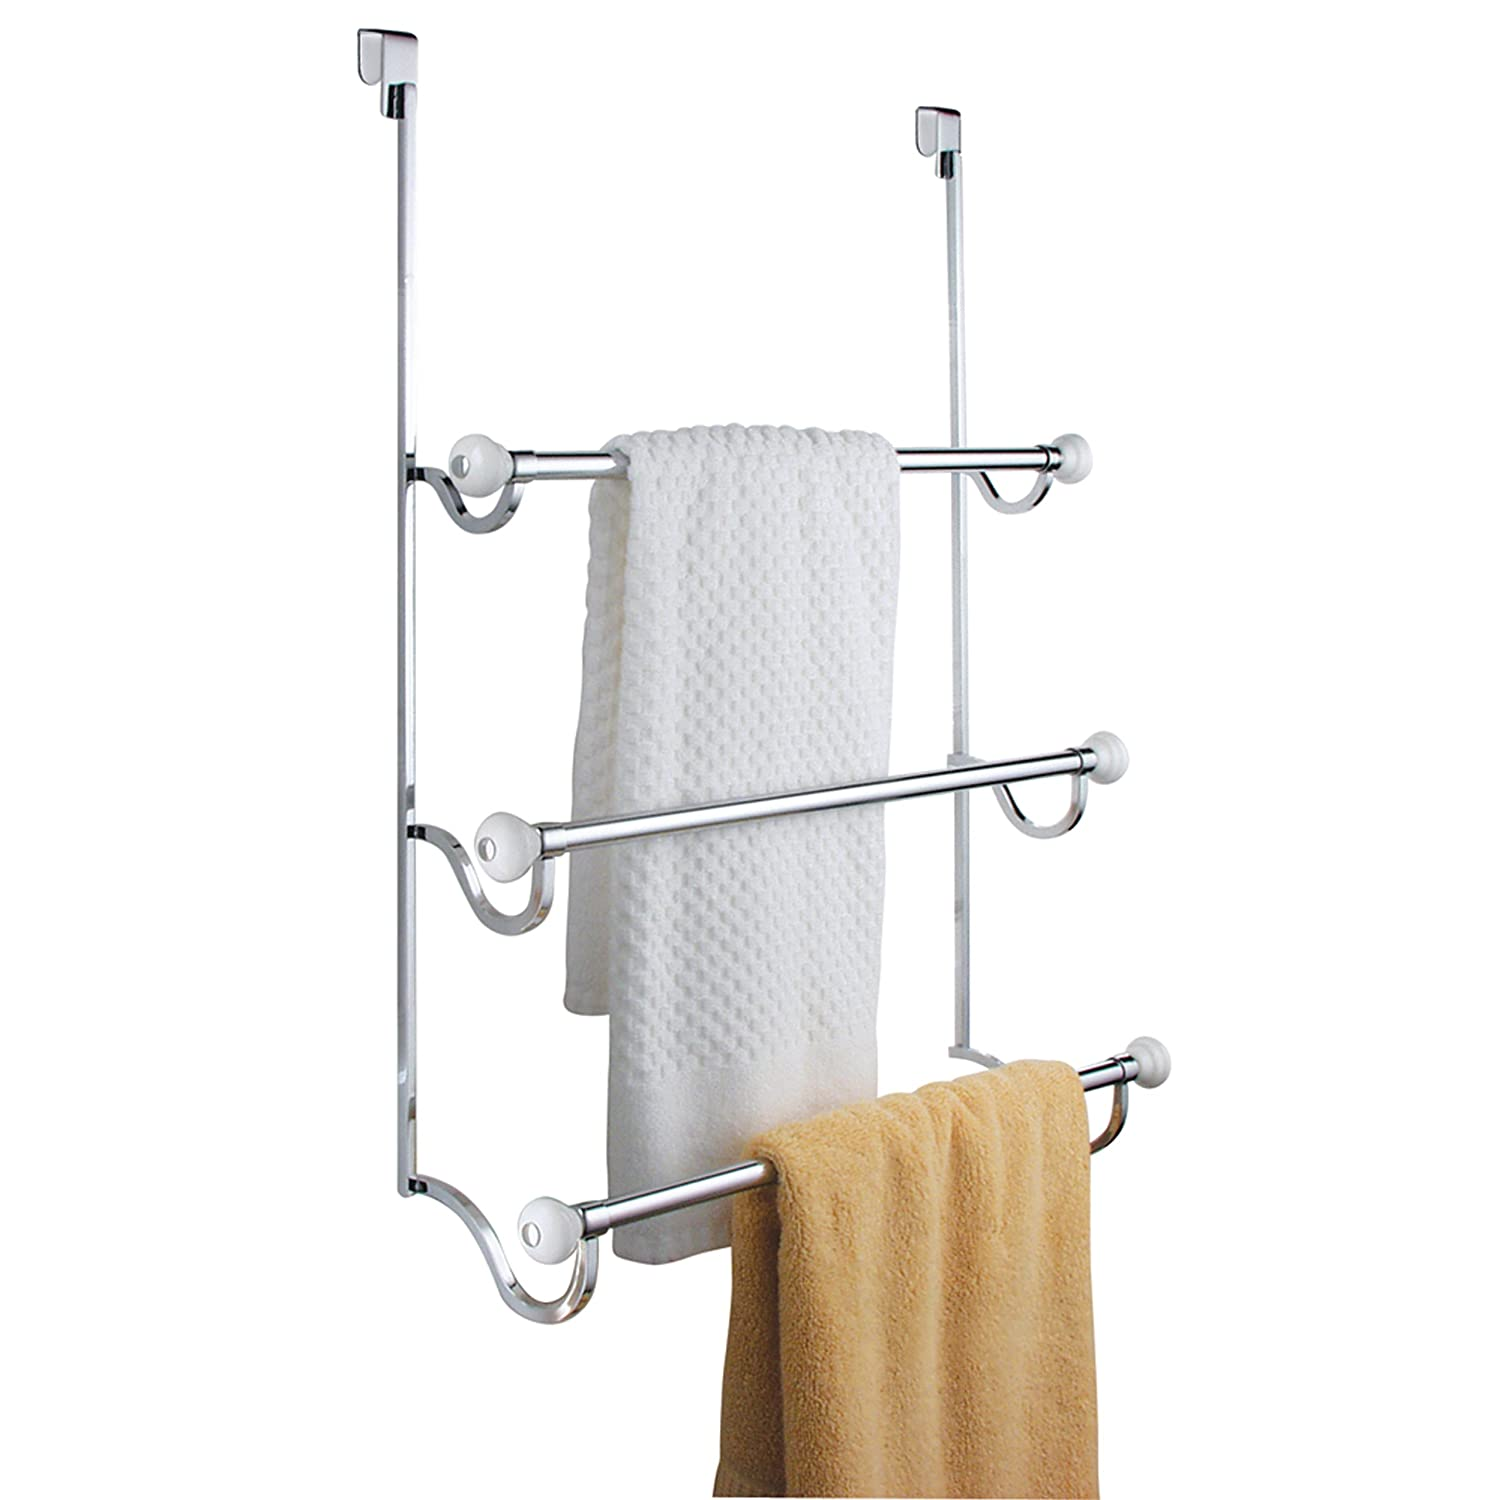 Interdesign York Over The Shower Door 3 Bar Towel Rack White And Chrome New Ebay